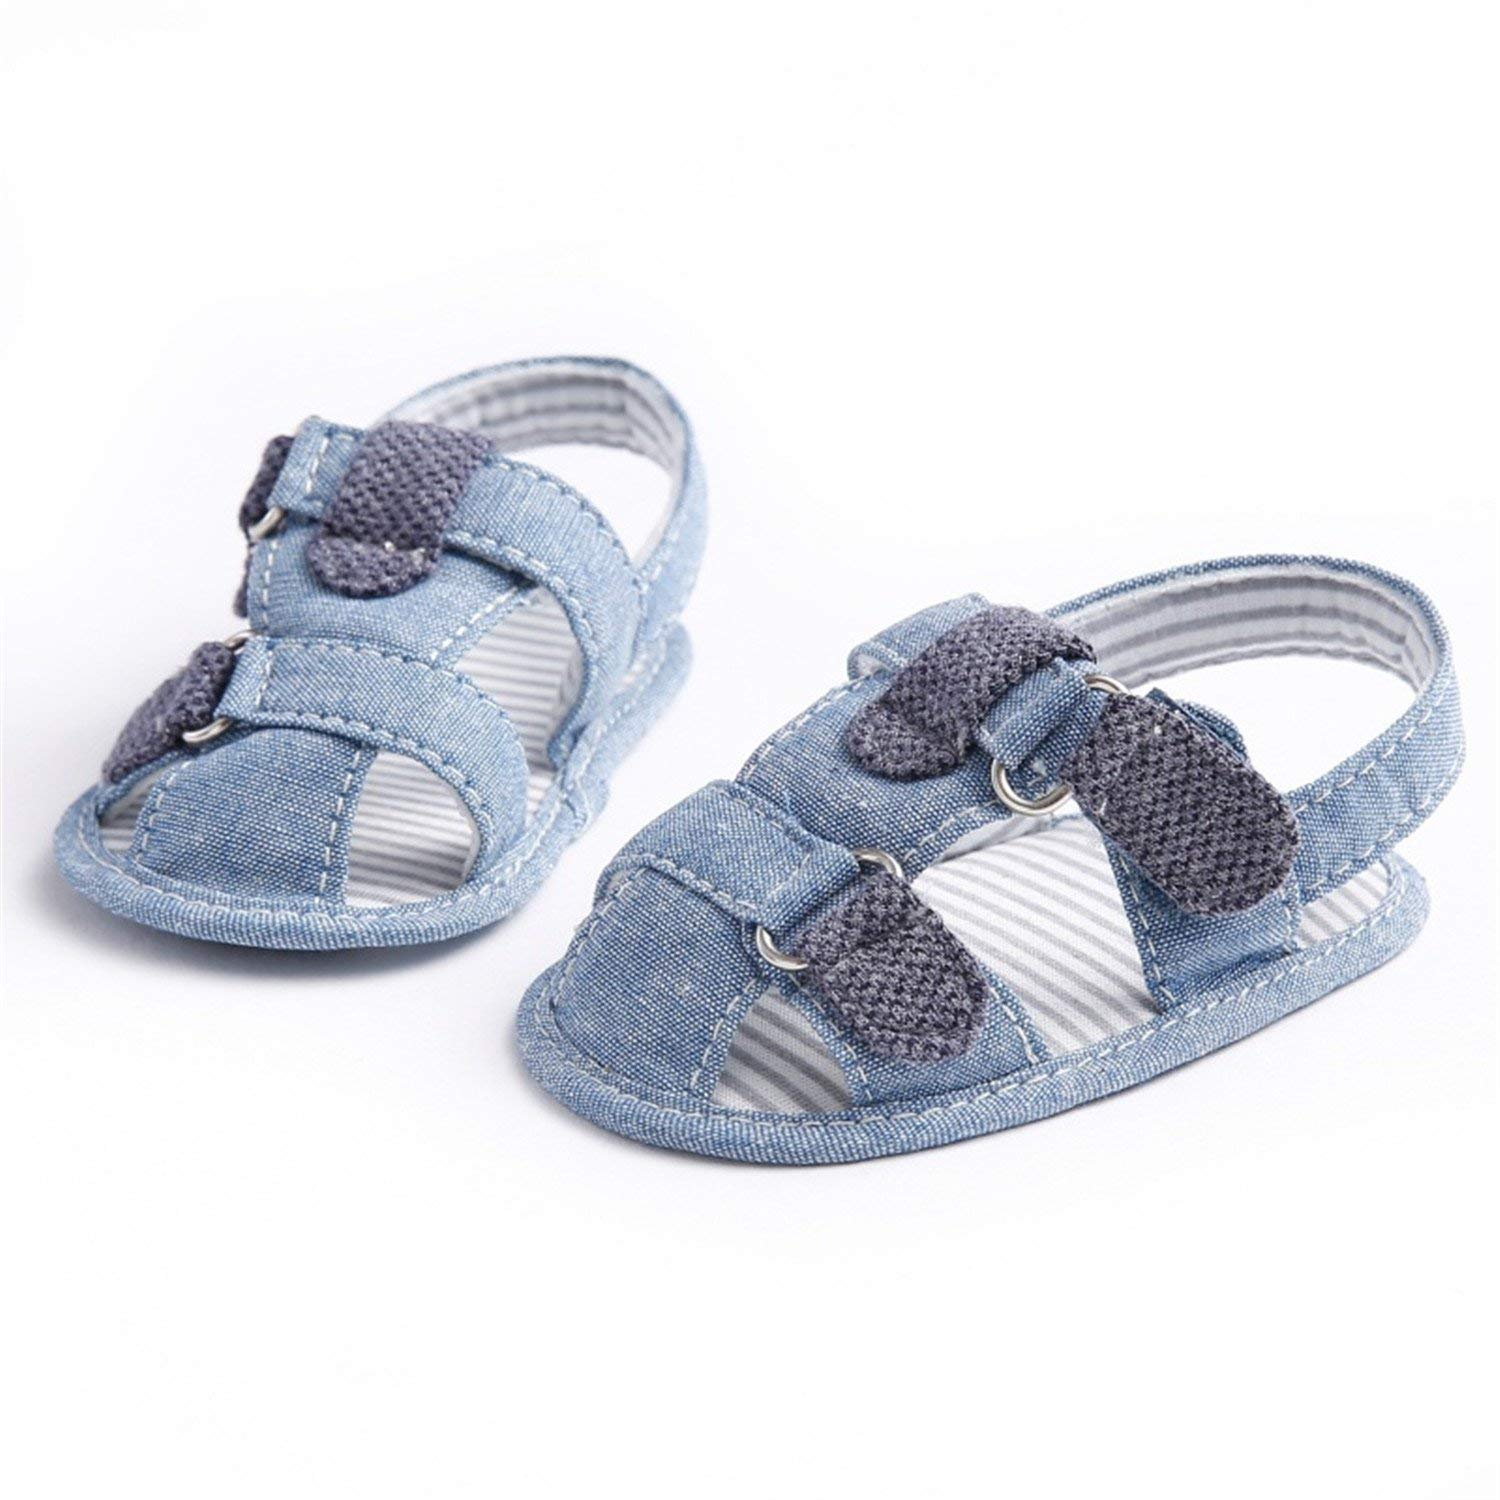 92ff79cde683f Get Quotations · Welcometoo New Summer Kids Shoes Denim Closed Toe Toddler  Boys Girls Sandals Orthopedic Sport Baby Sandals